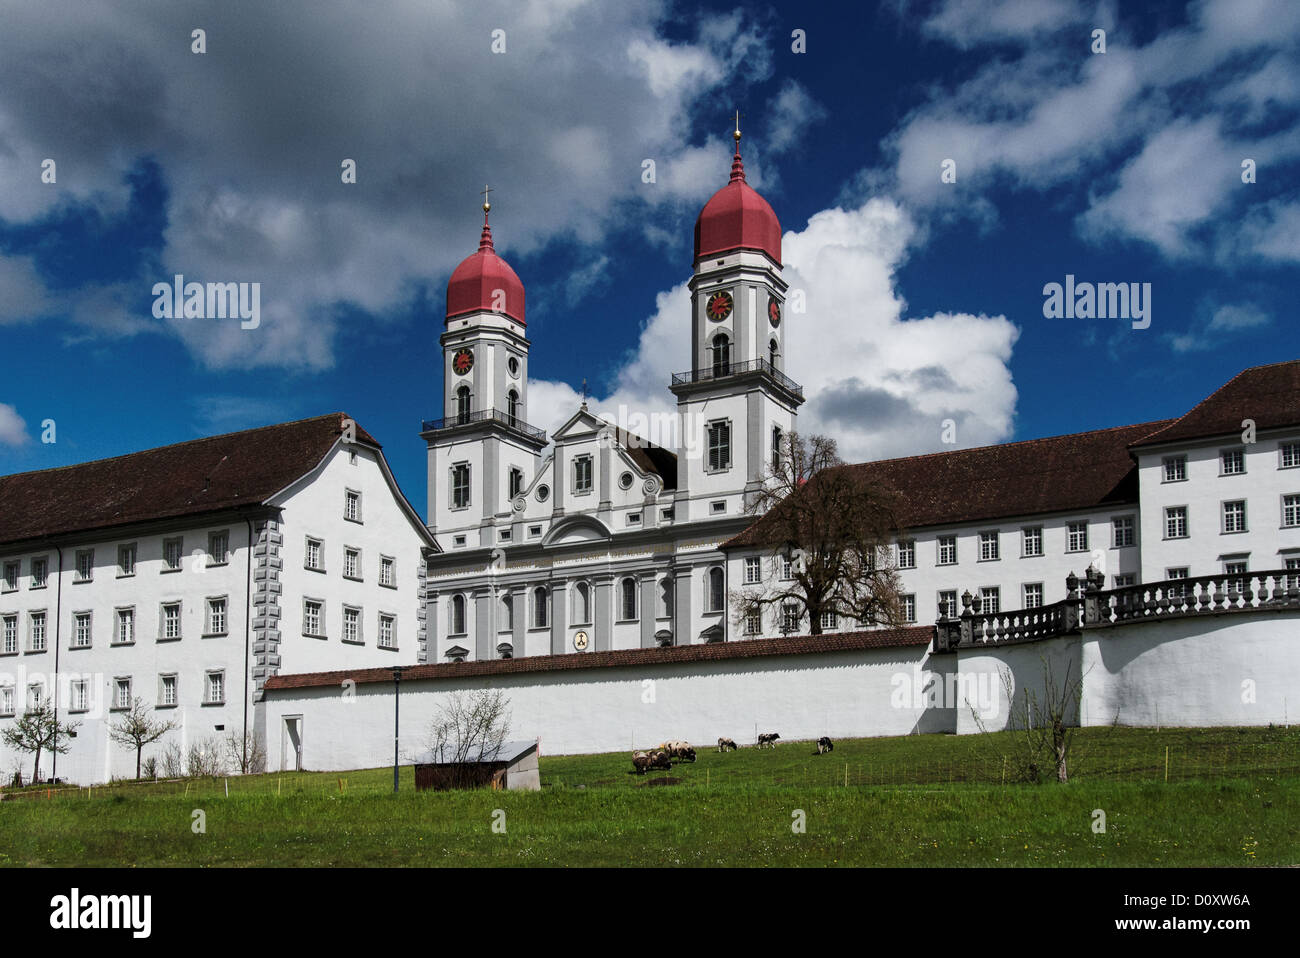 Le christianisme, canton, Lucerne, catholique, Église, cloître, religion, Suisse, Europe, Saint Urbain, Photo Stock